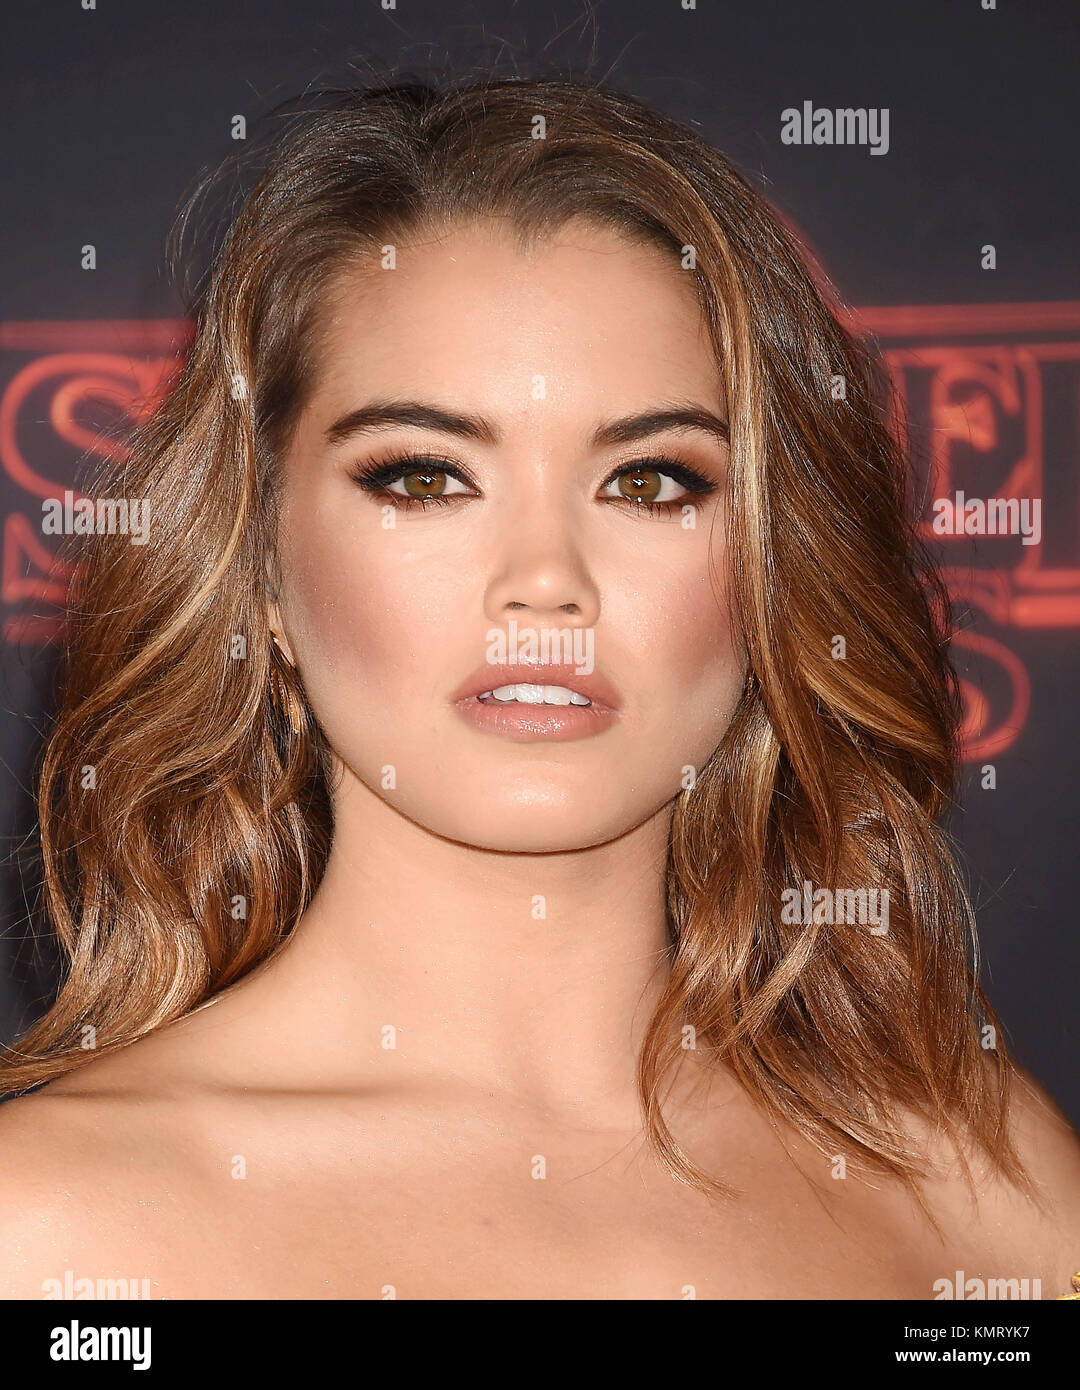 PARIS BERELC US film actress and model  arrives at the Premiere Of Netflix's 'Stranger Things' Season - Stock Image